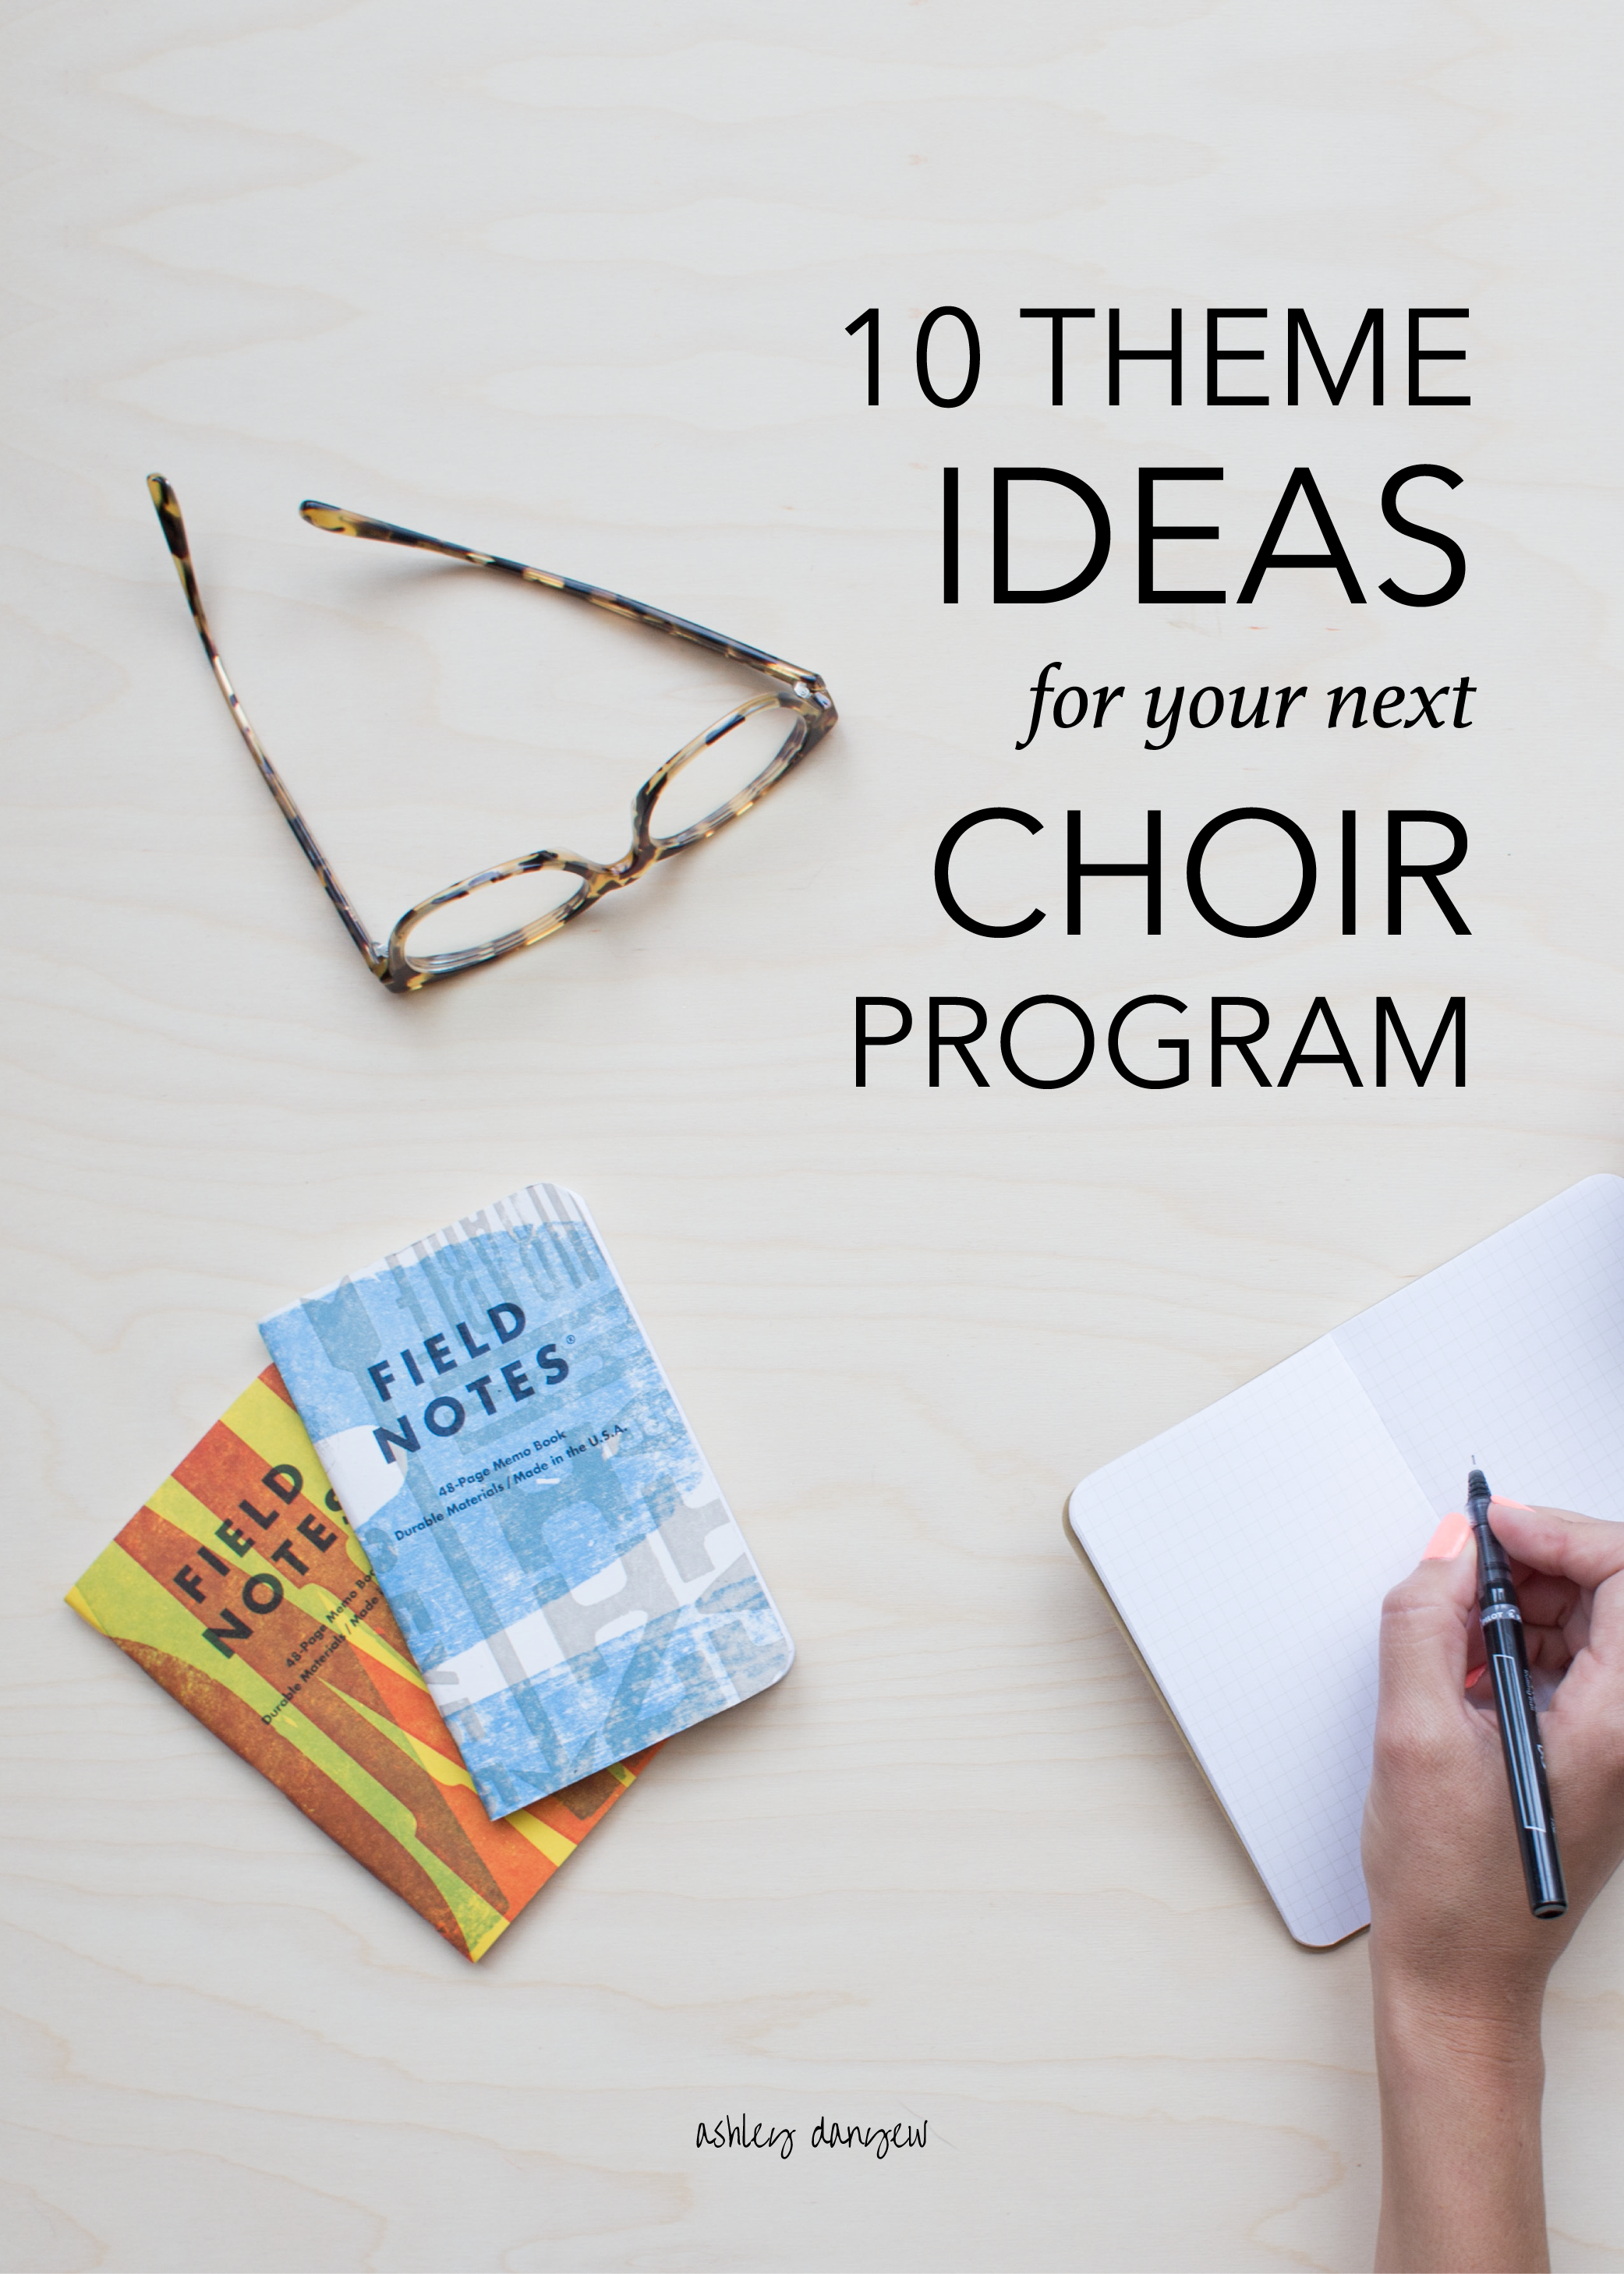 10 Theme Ideas for Your Next Choir Program | Ashley Danyew